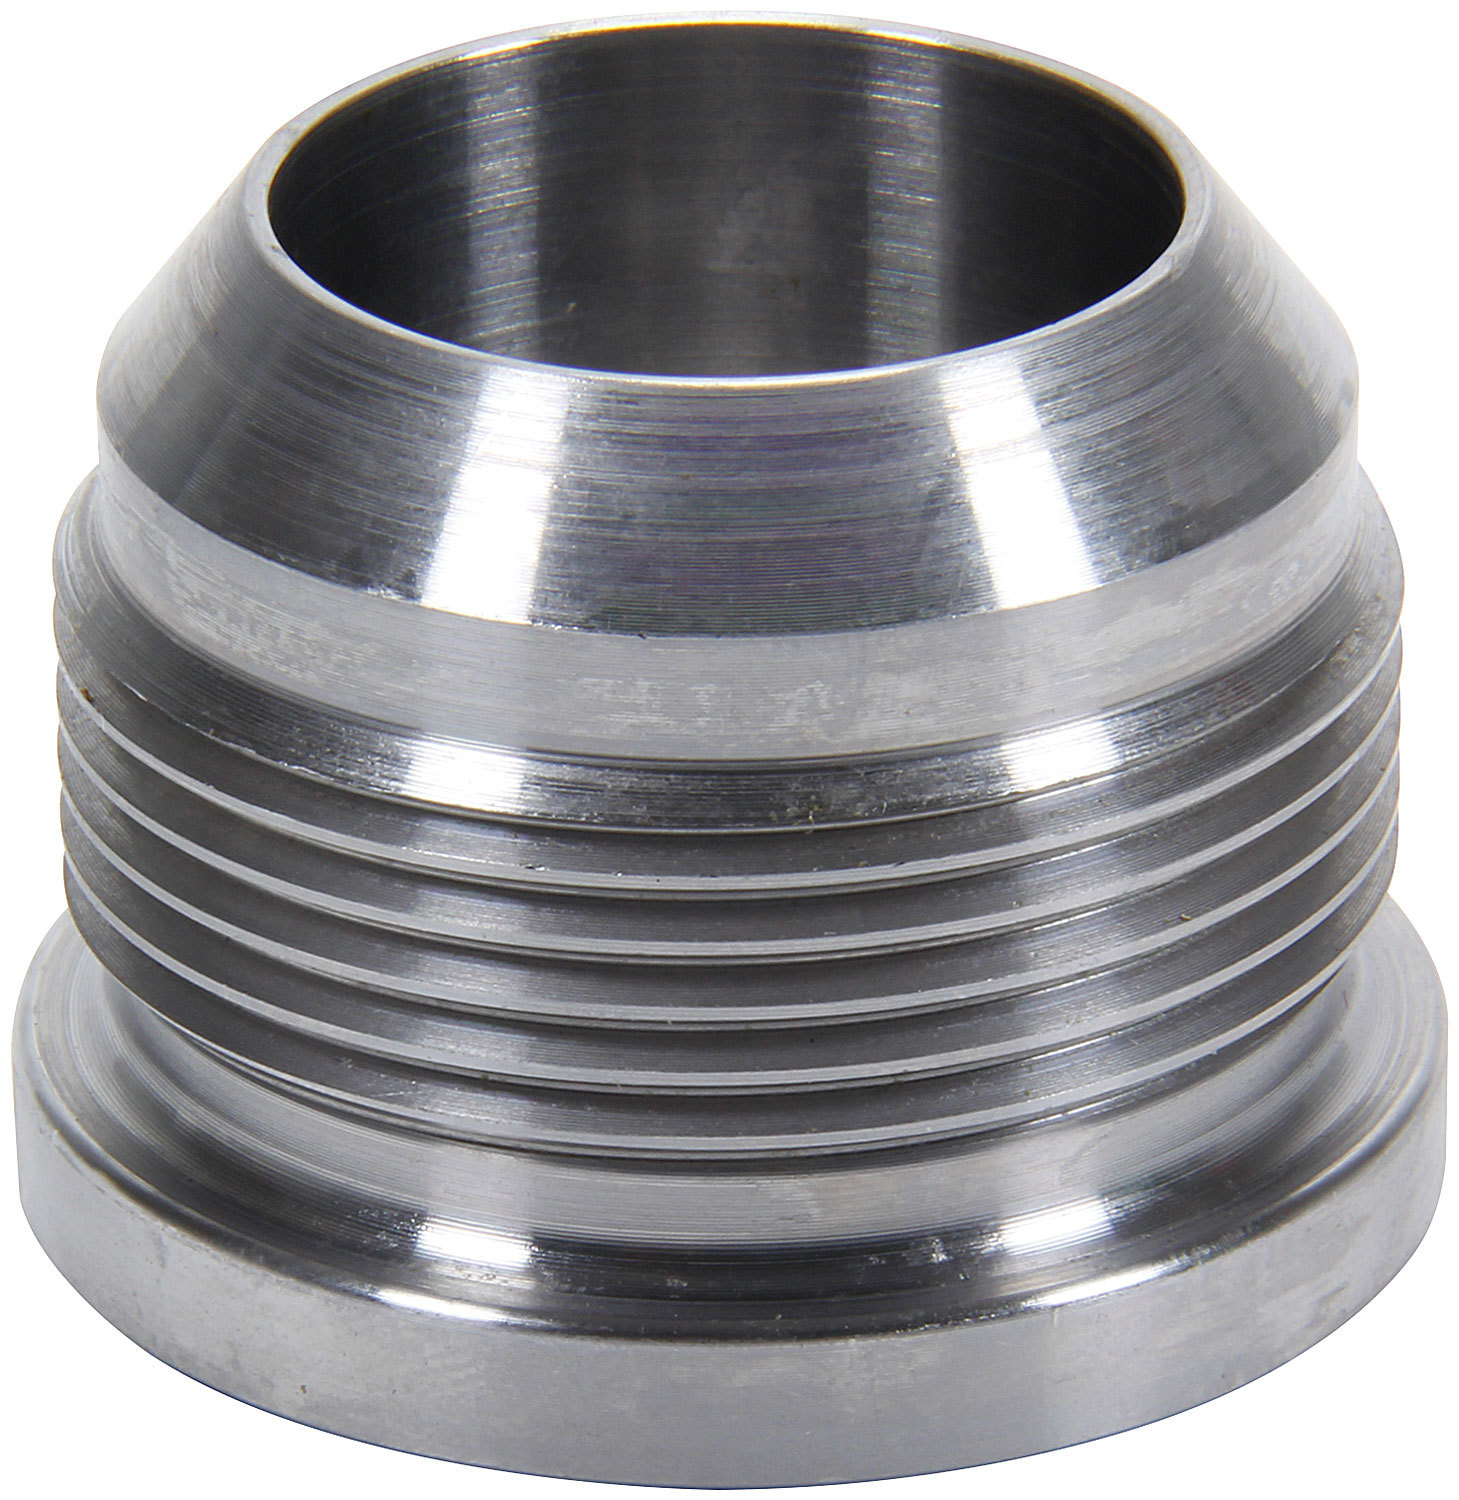 Allstar Performance 50776 Bung, 20 AN Male, Weld-On, Steel, Natural, Each